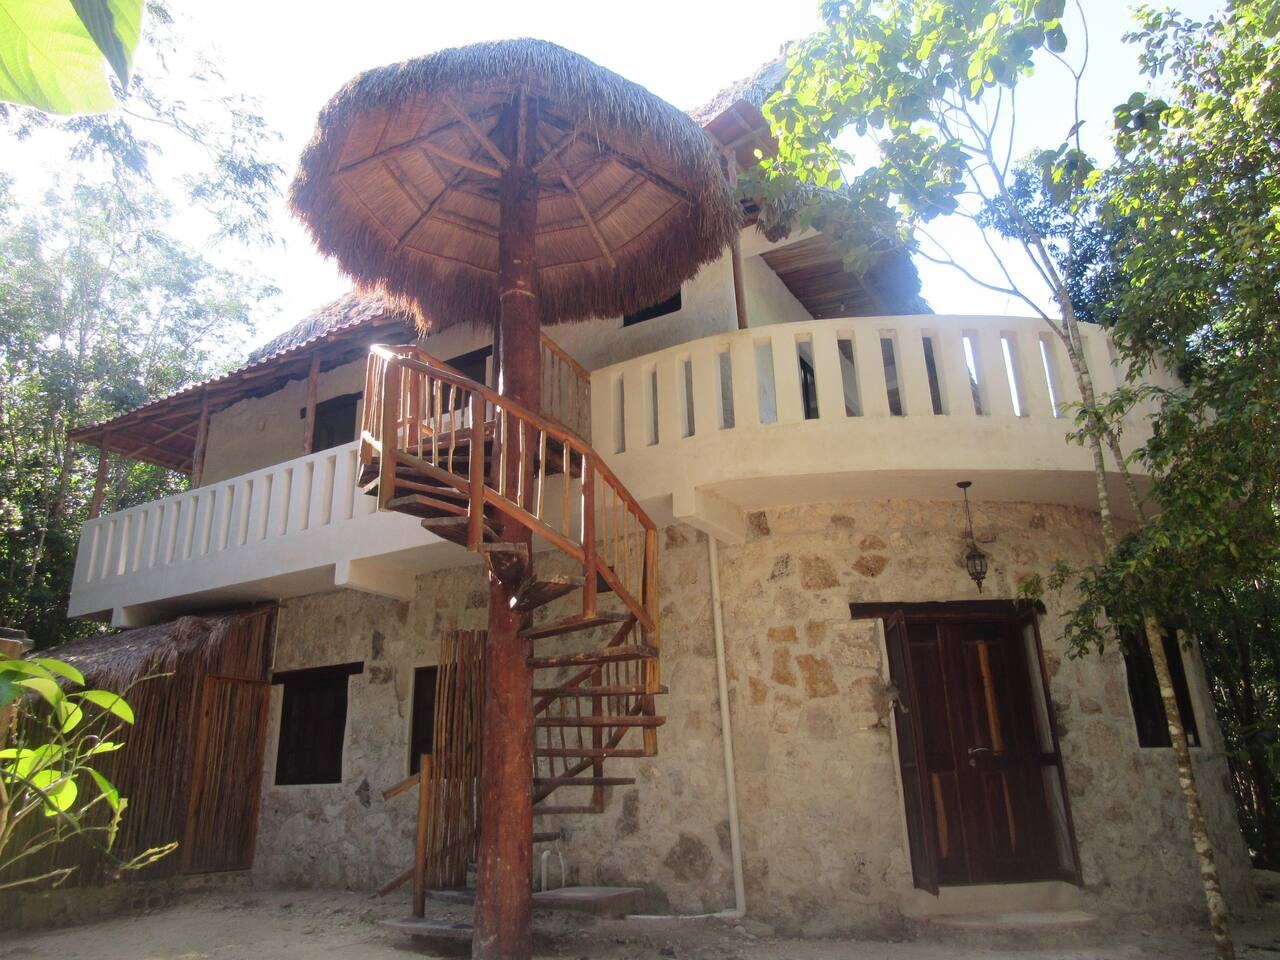 The entrance to the accommodation, which is the whole second floor on top of  the stone house, is spiral staircase.